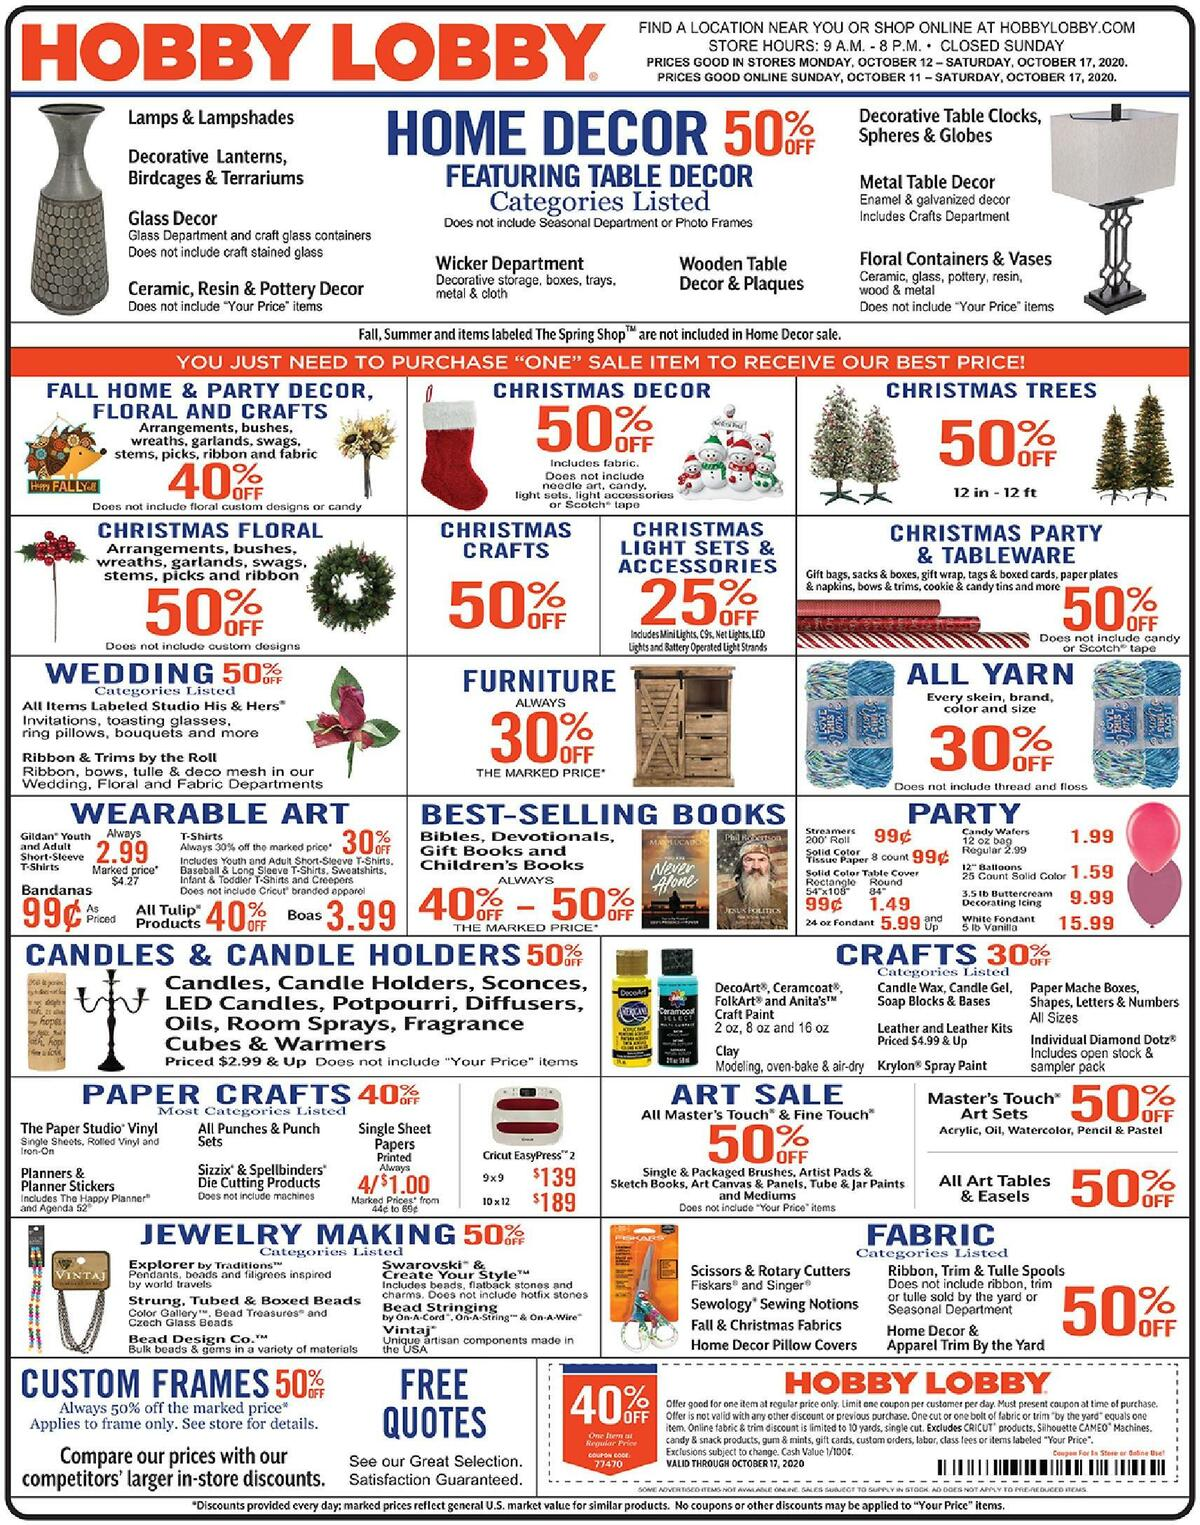 Hobby Lobby Weekly Ad from October 11